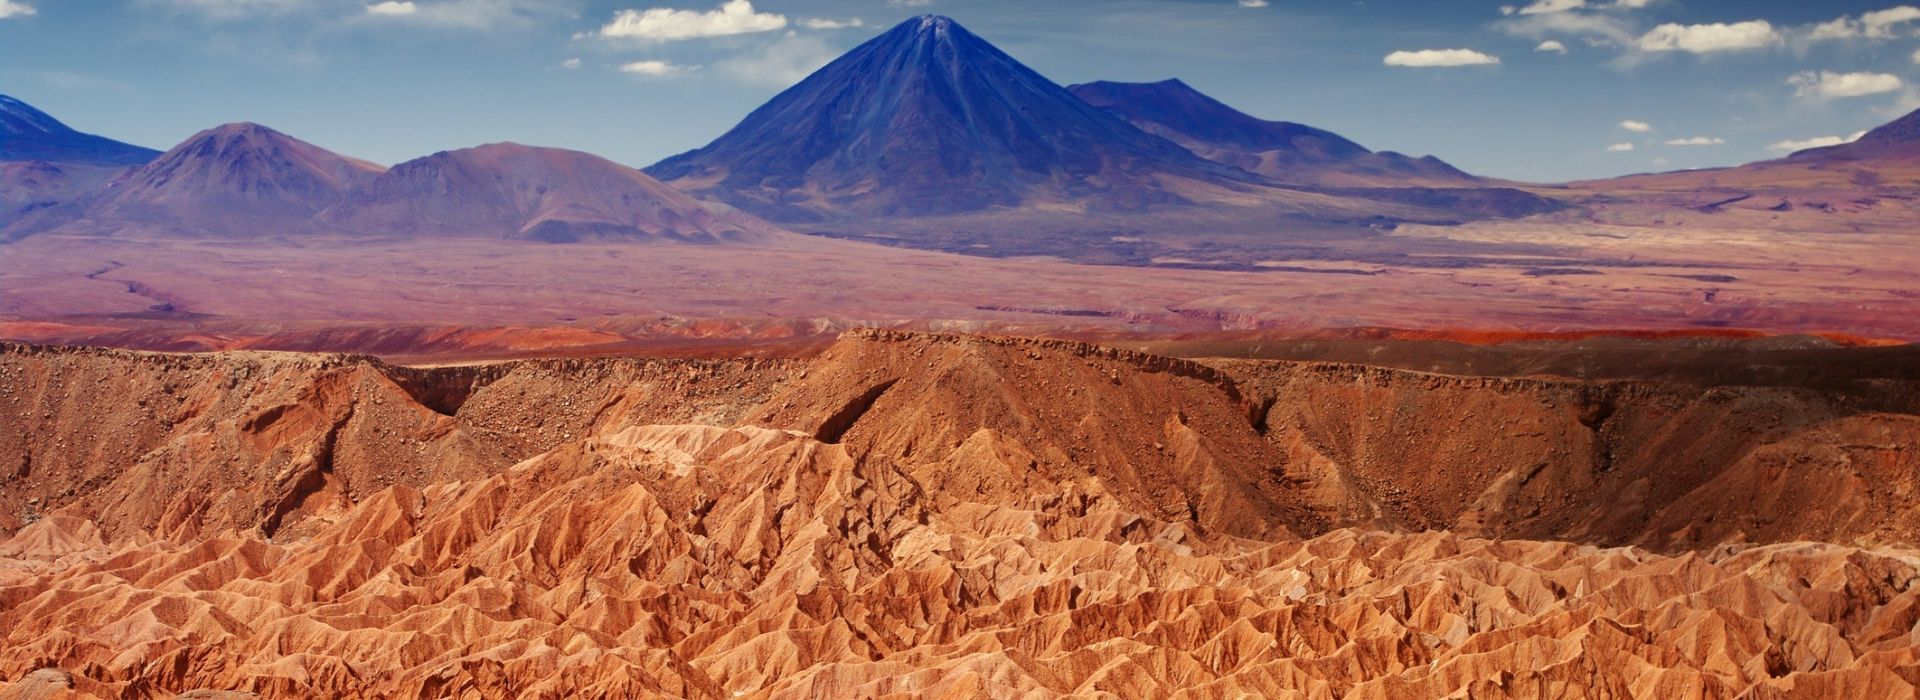 Atacama Desert Tours and Holidays 2019/2020